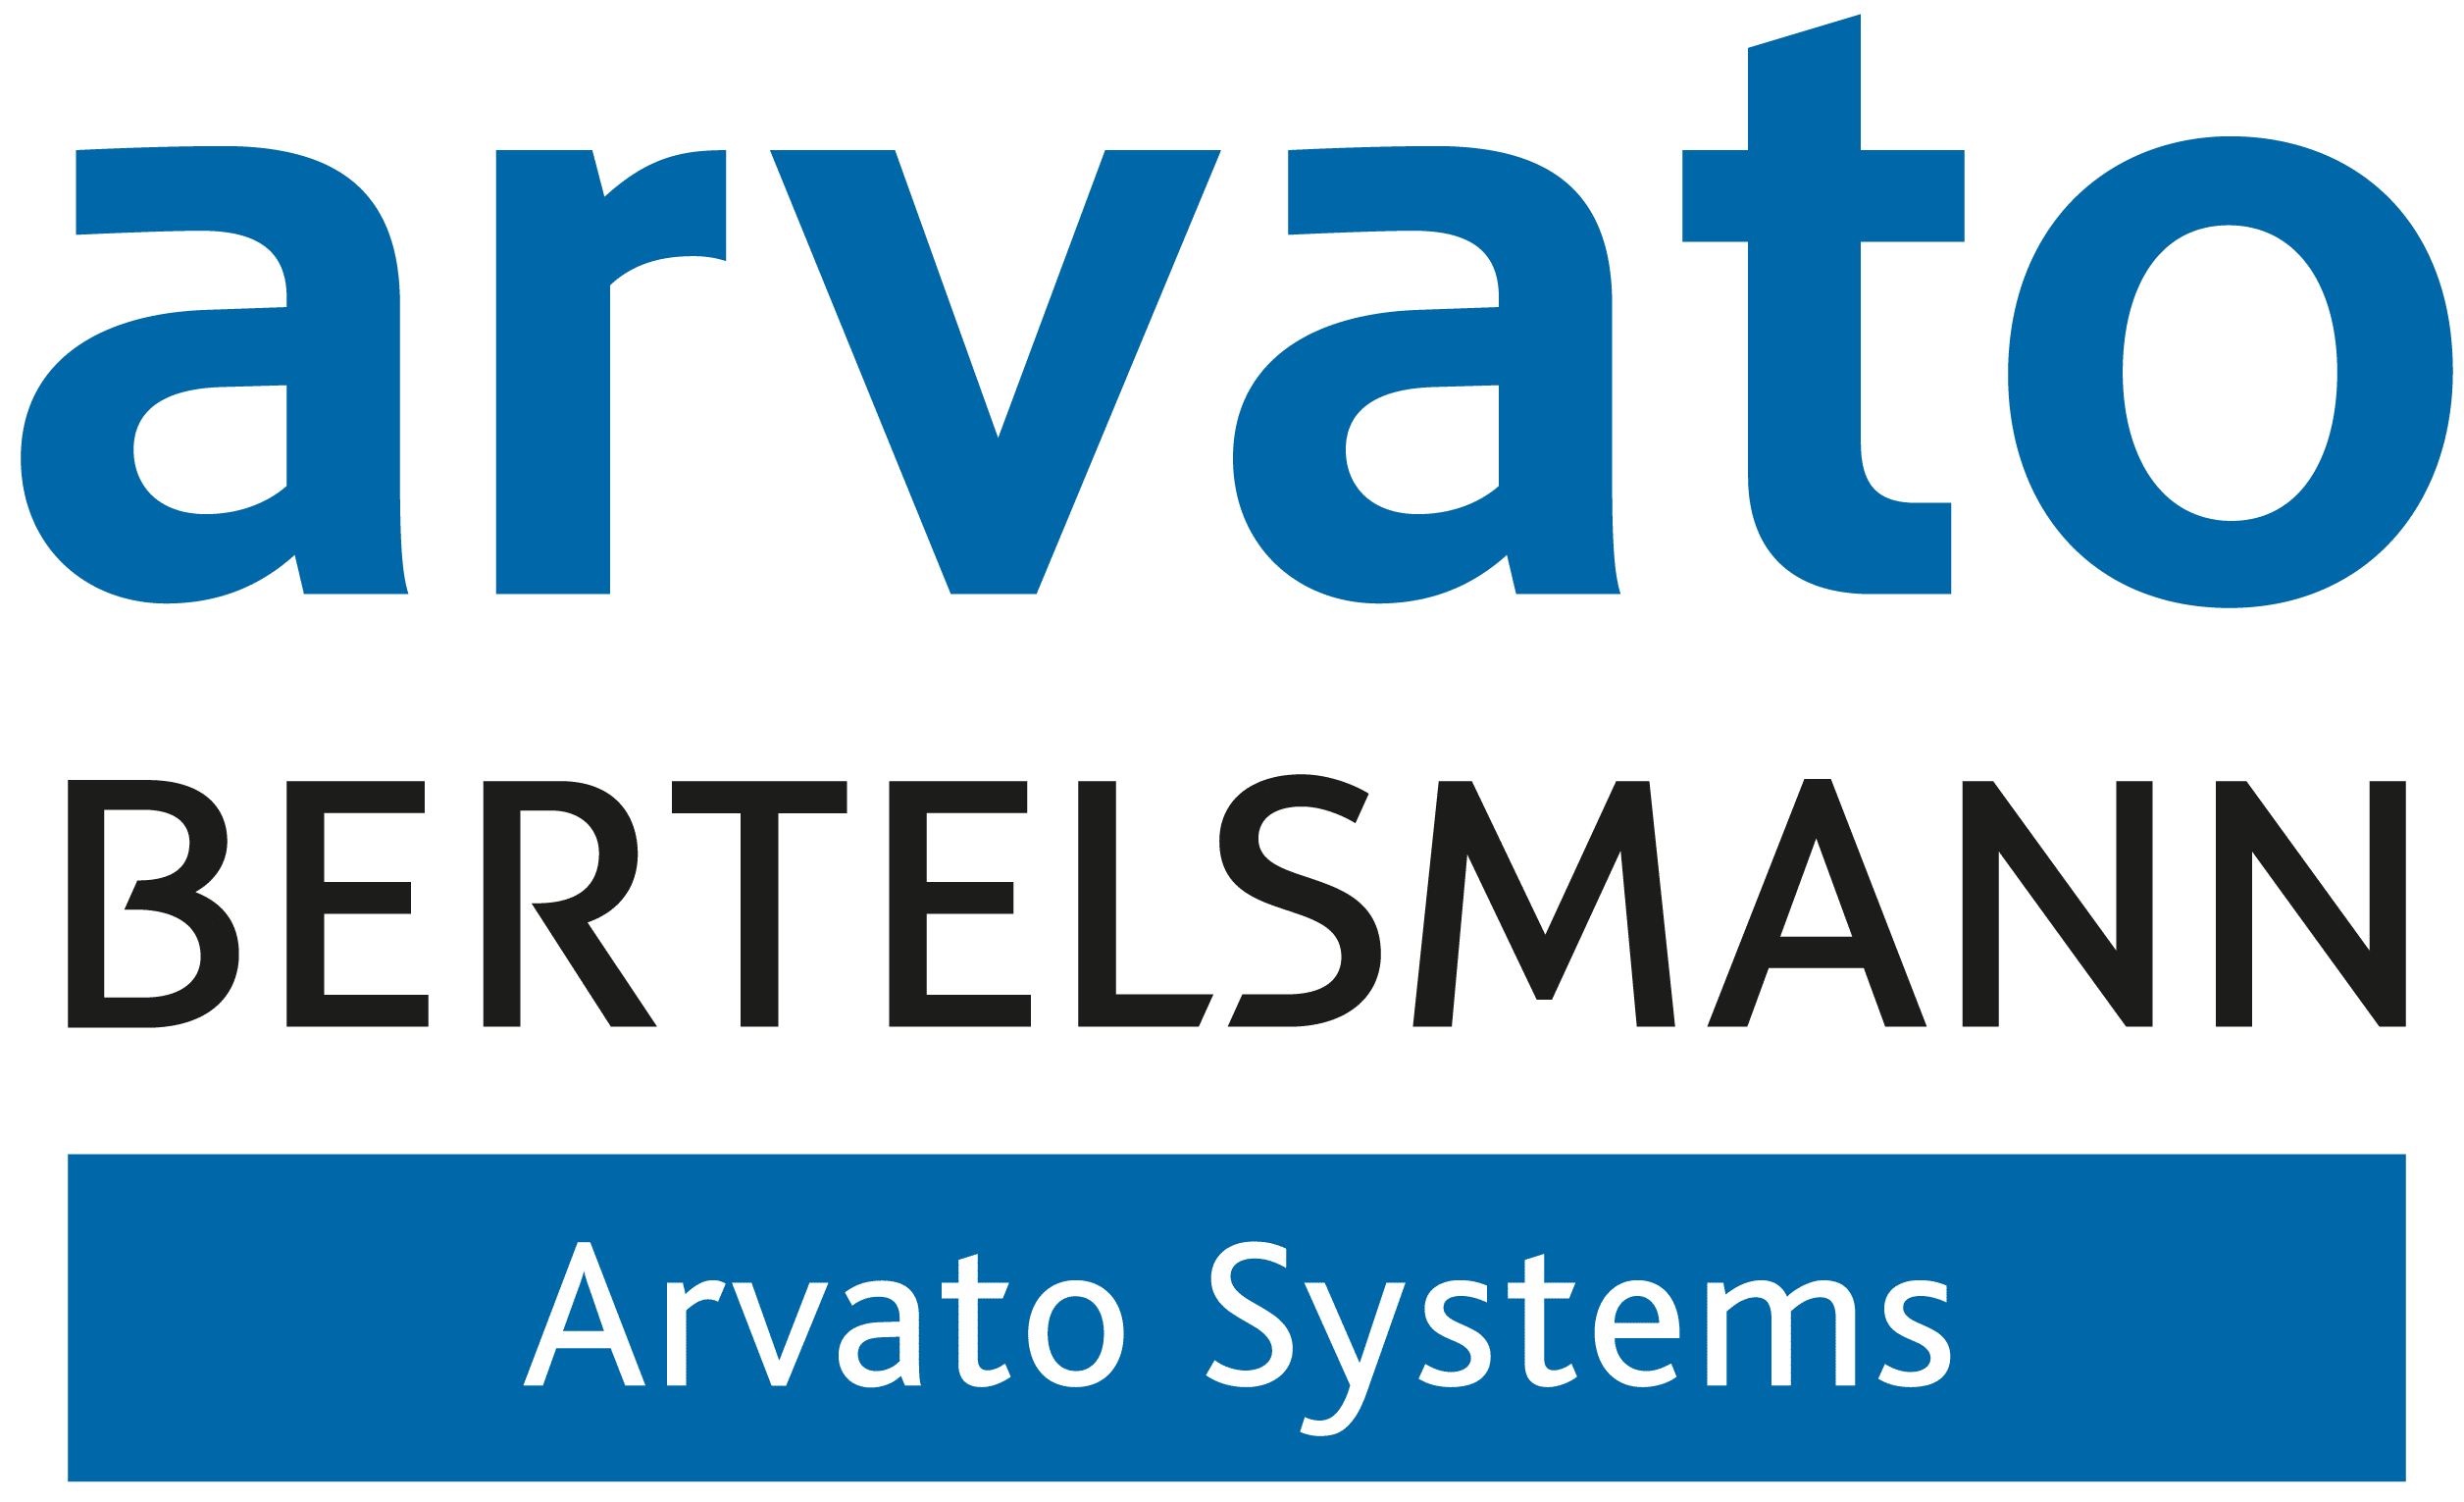 Arvato-Systems logo